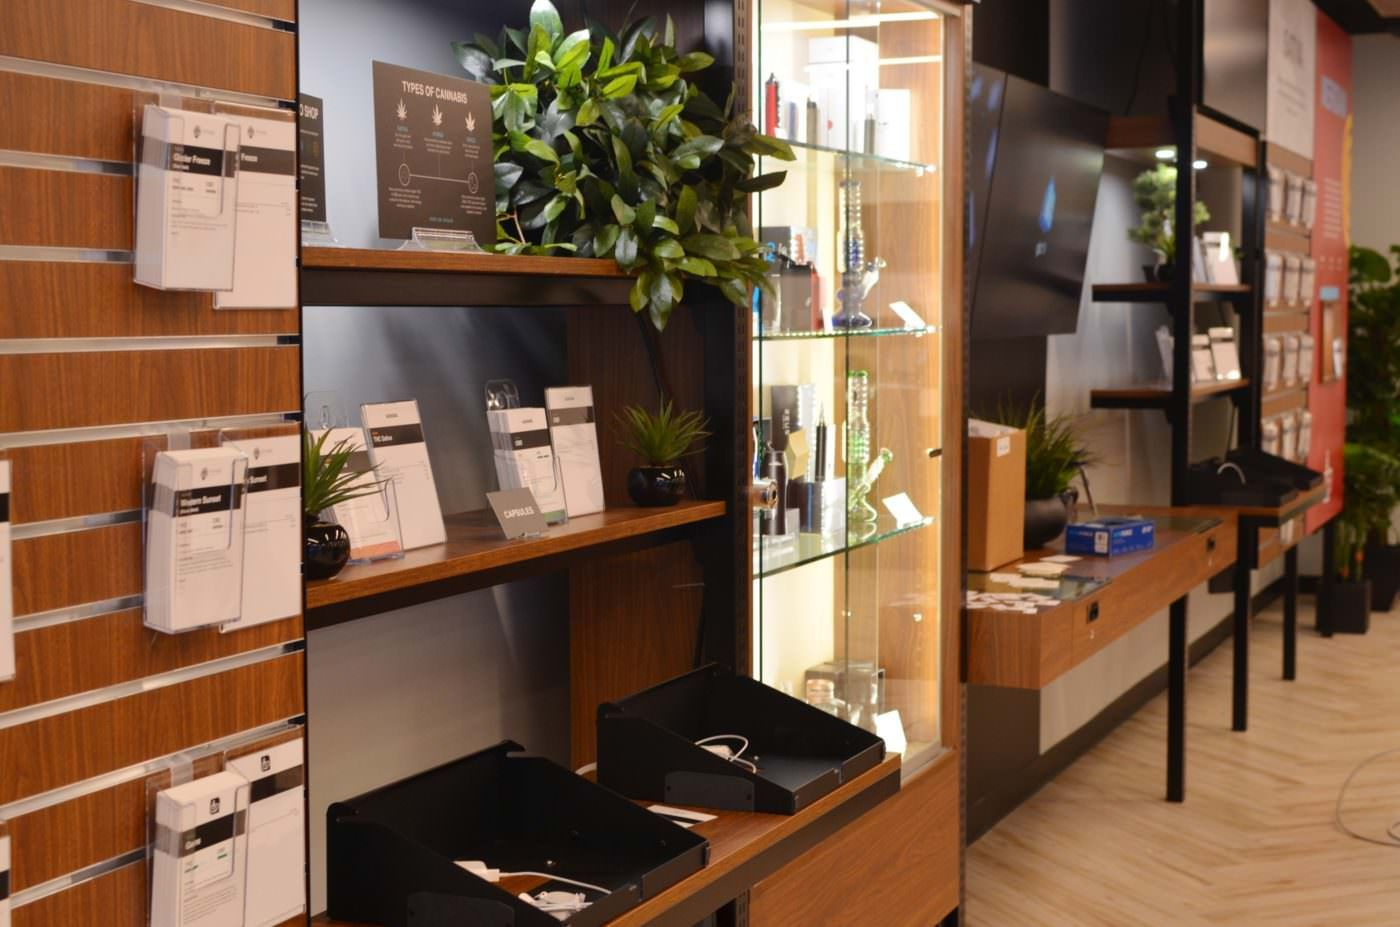 Alberta To License 115 New Cannabis Stores Over Next 6 Months